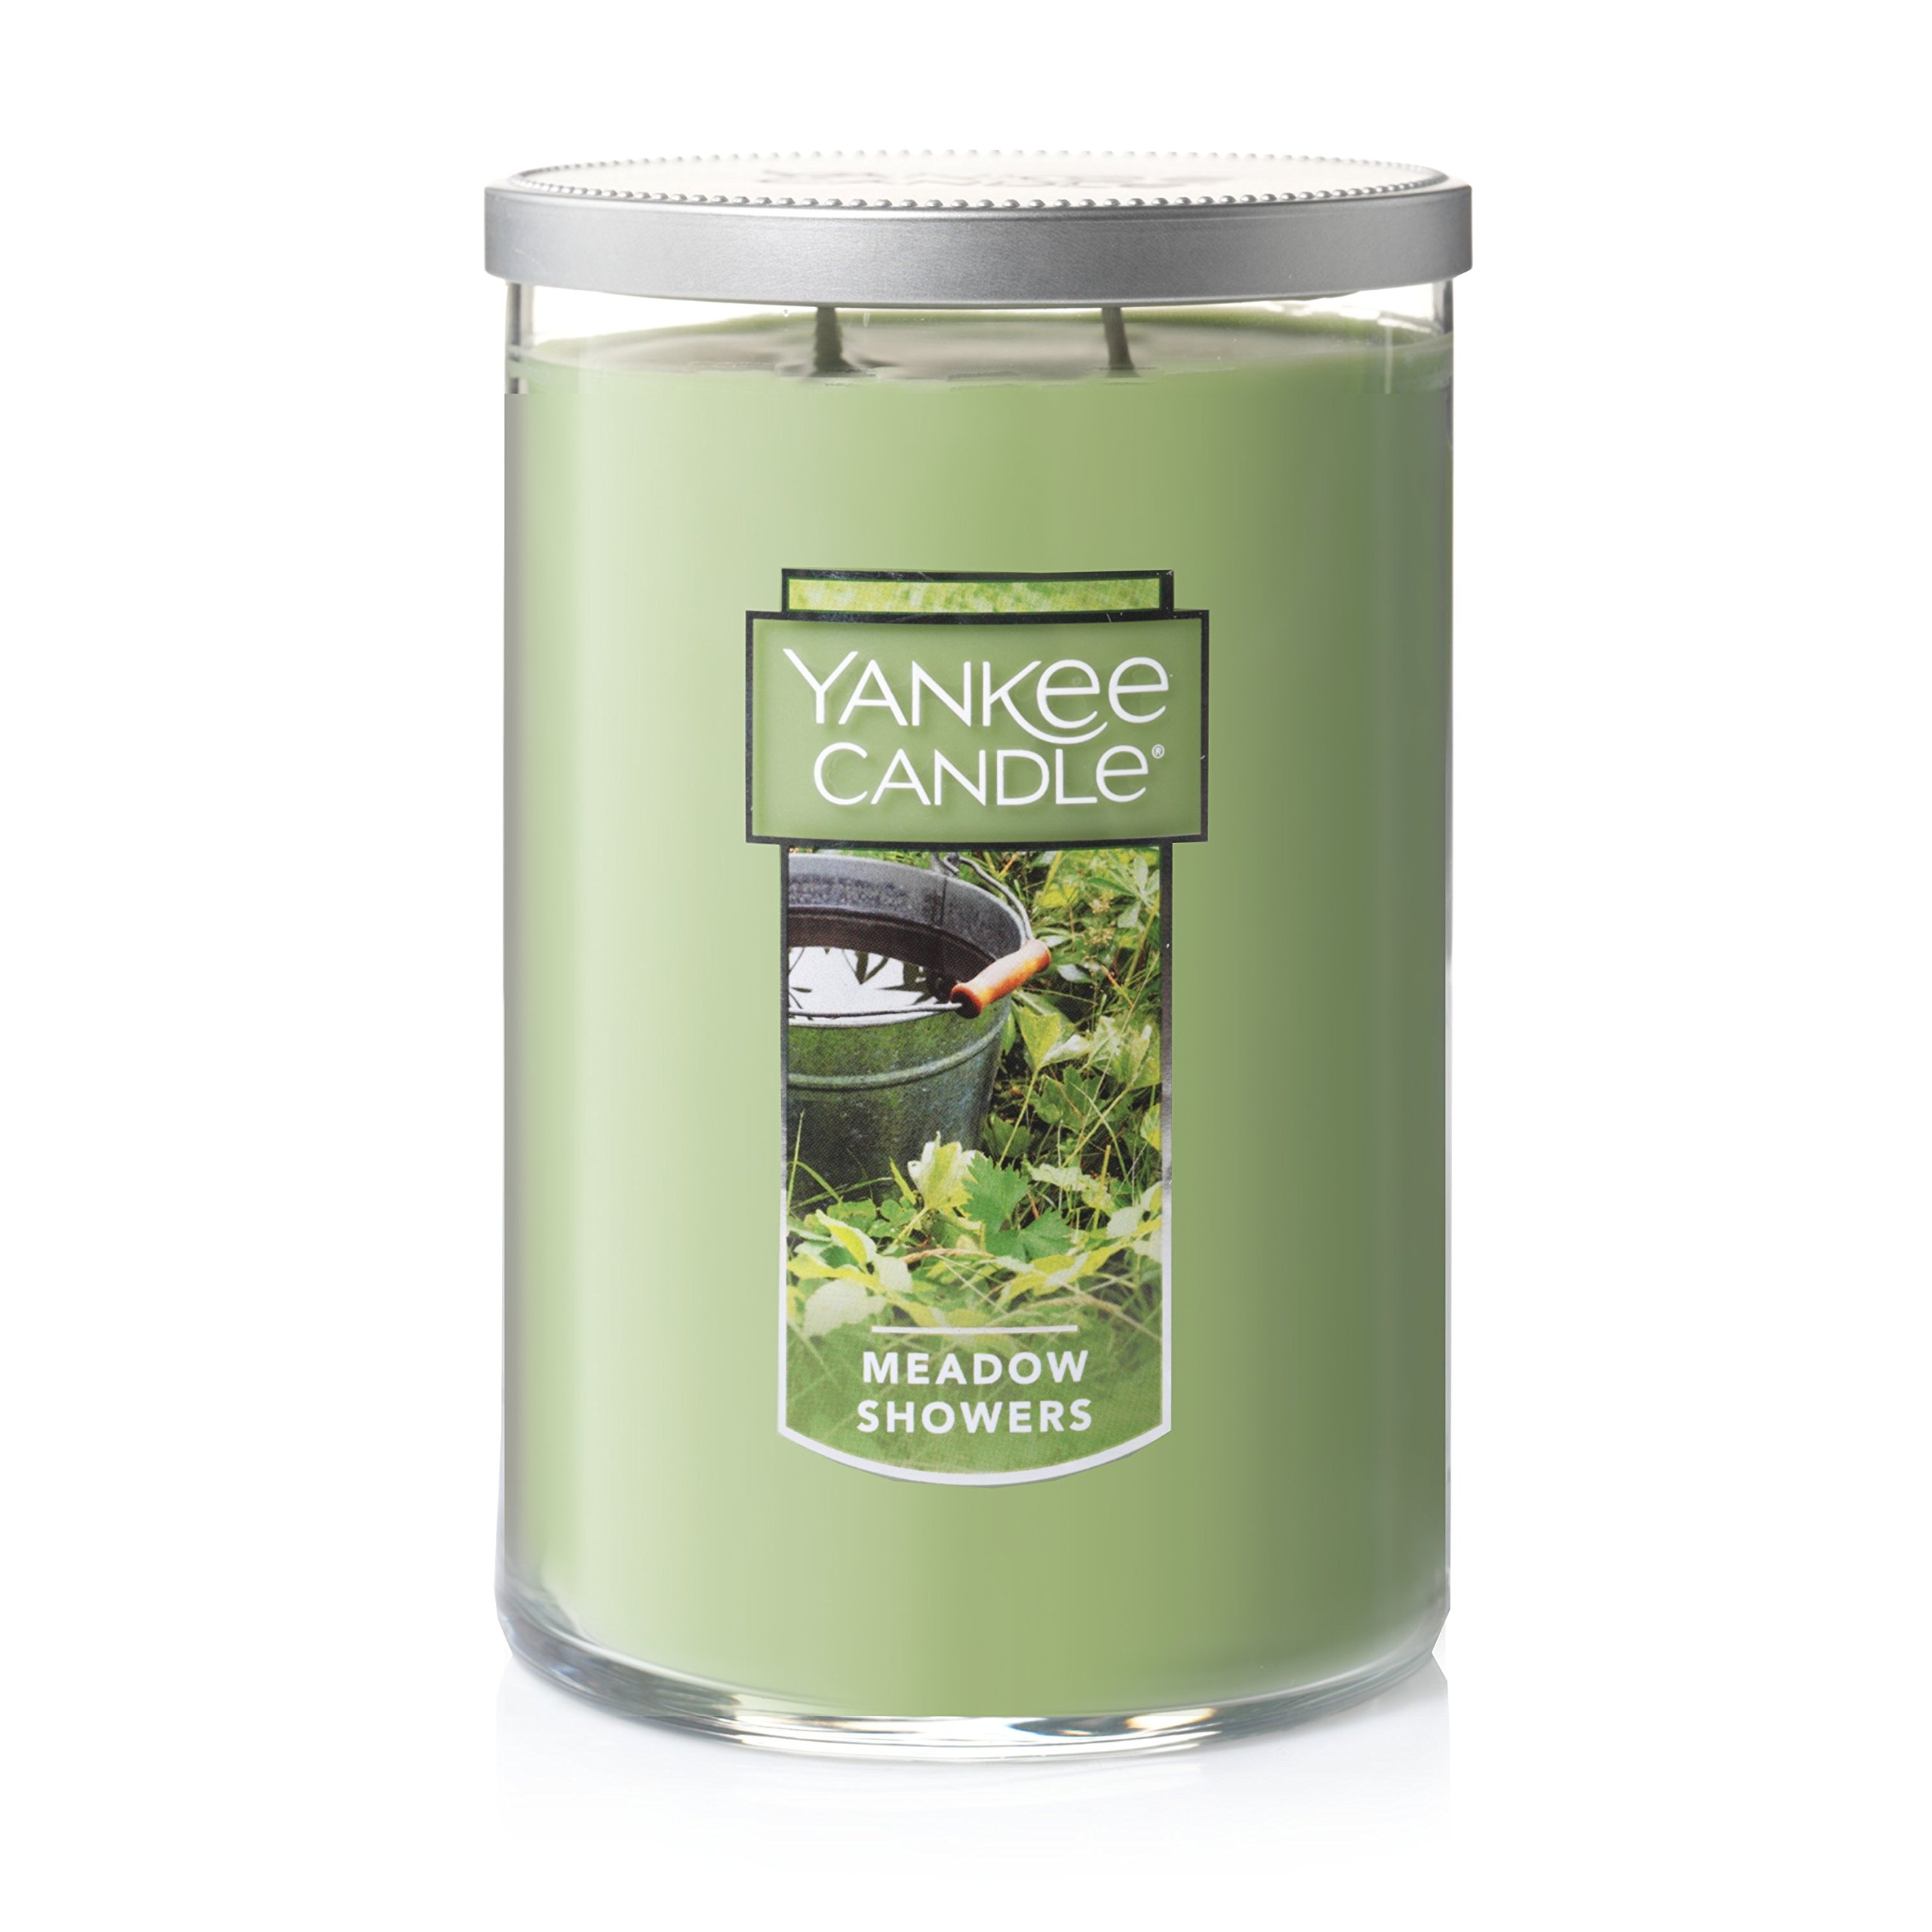 Yankee Candle Large 2-Wick Tumbler Candle, Meadow Showers by Yankee Candle